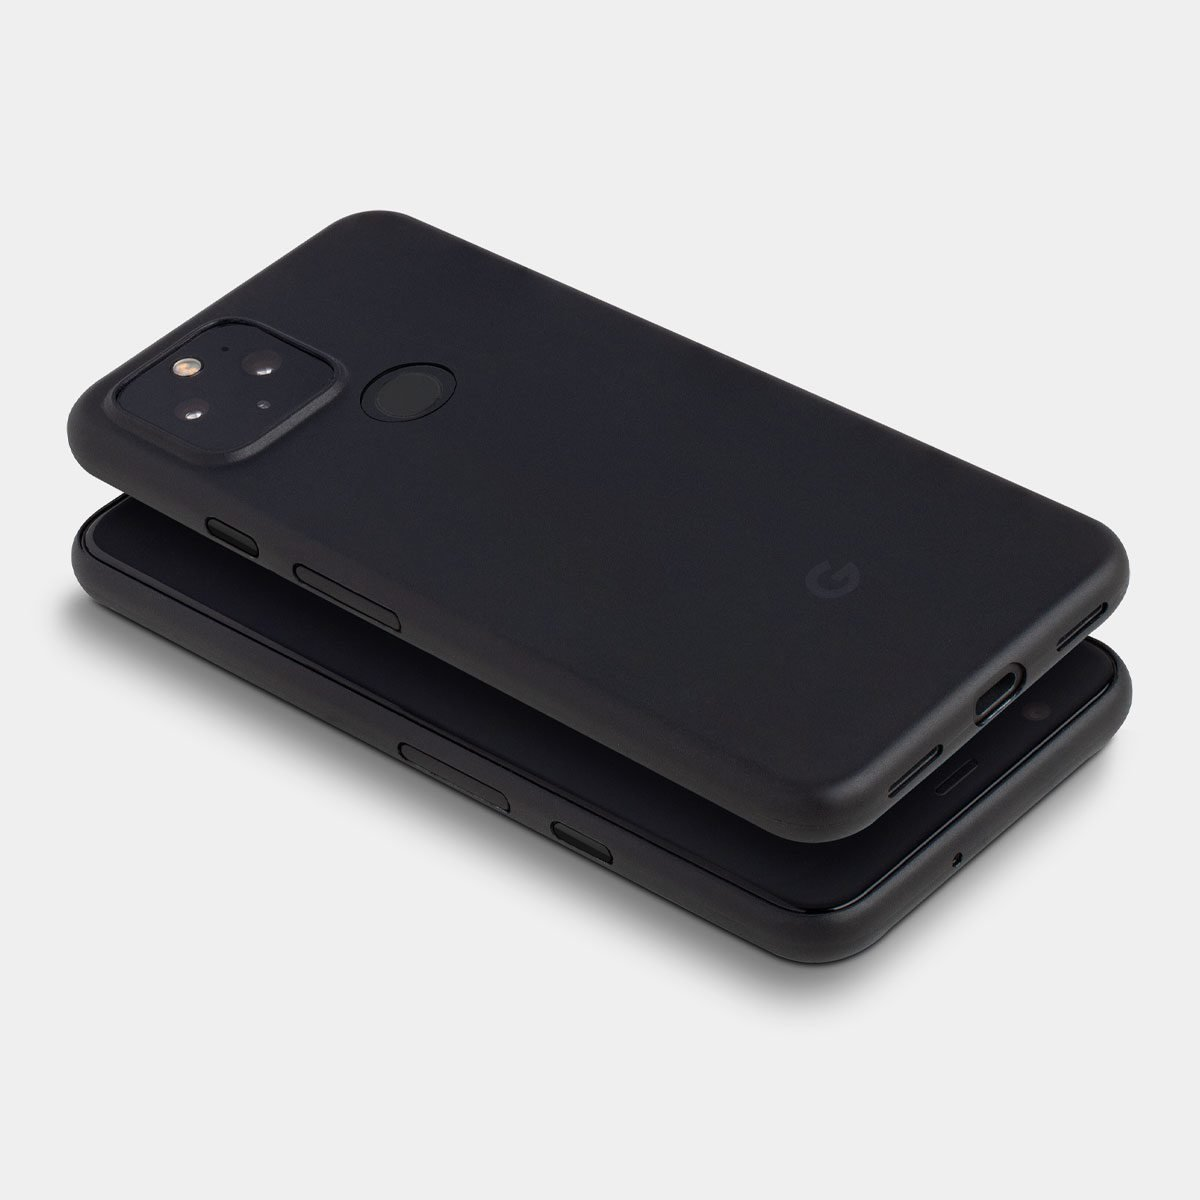 Totallee Pixel 5 Cases Announced 5